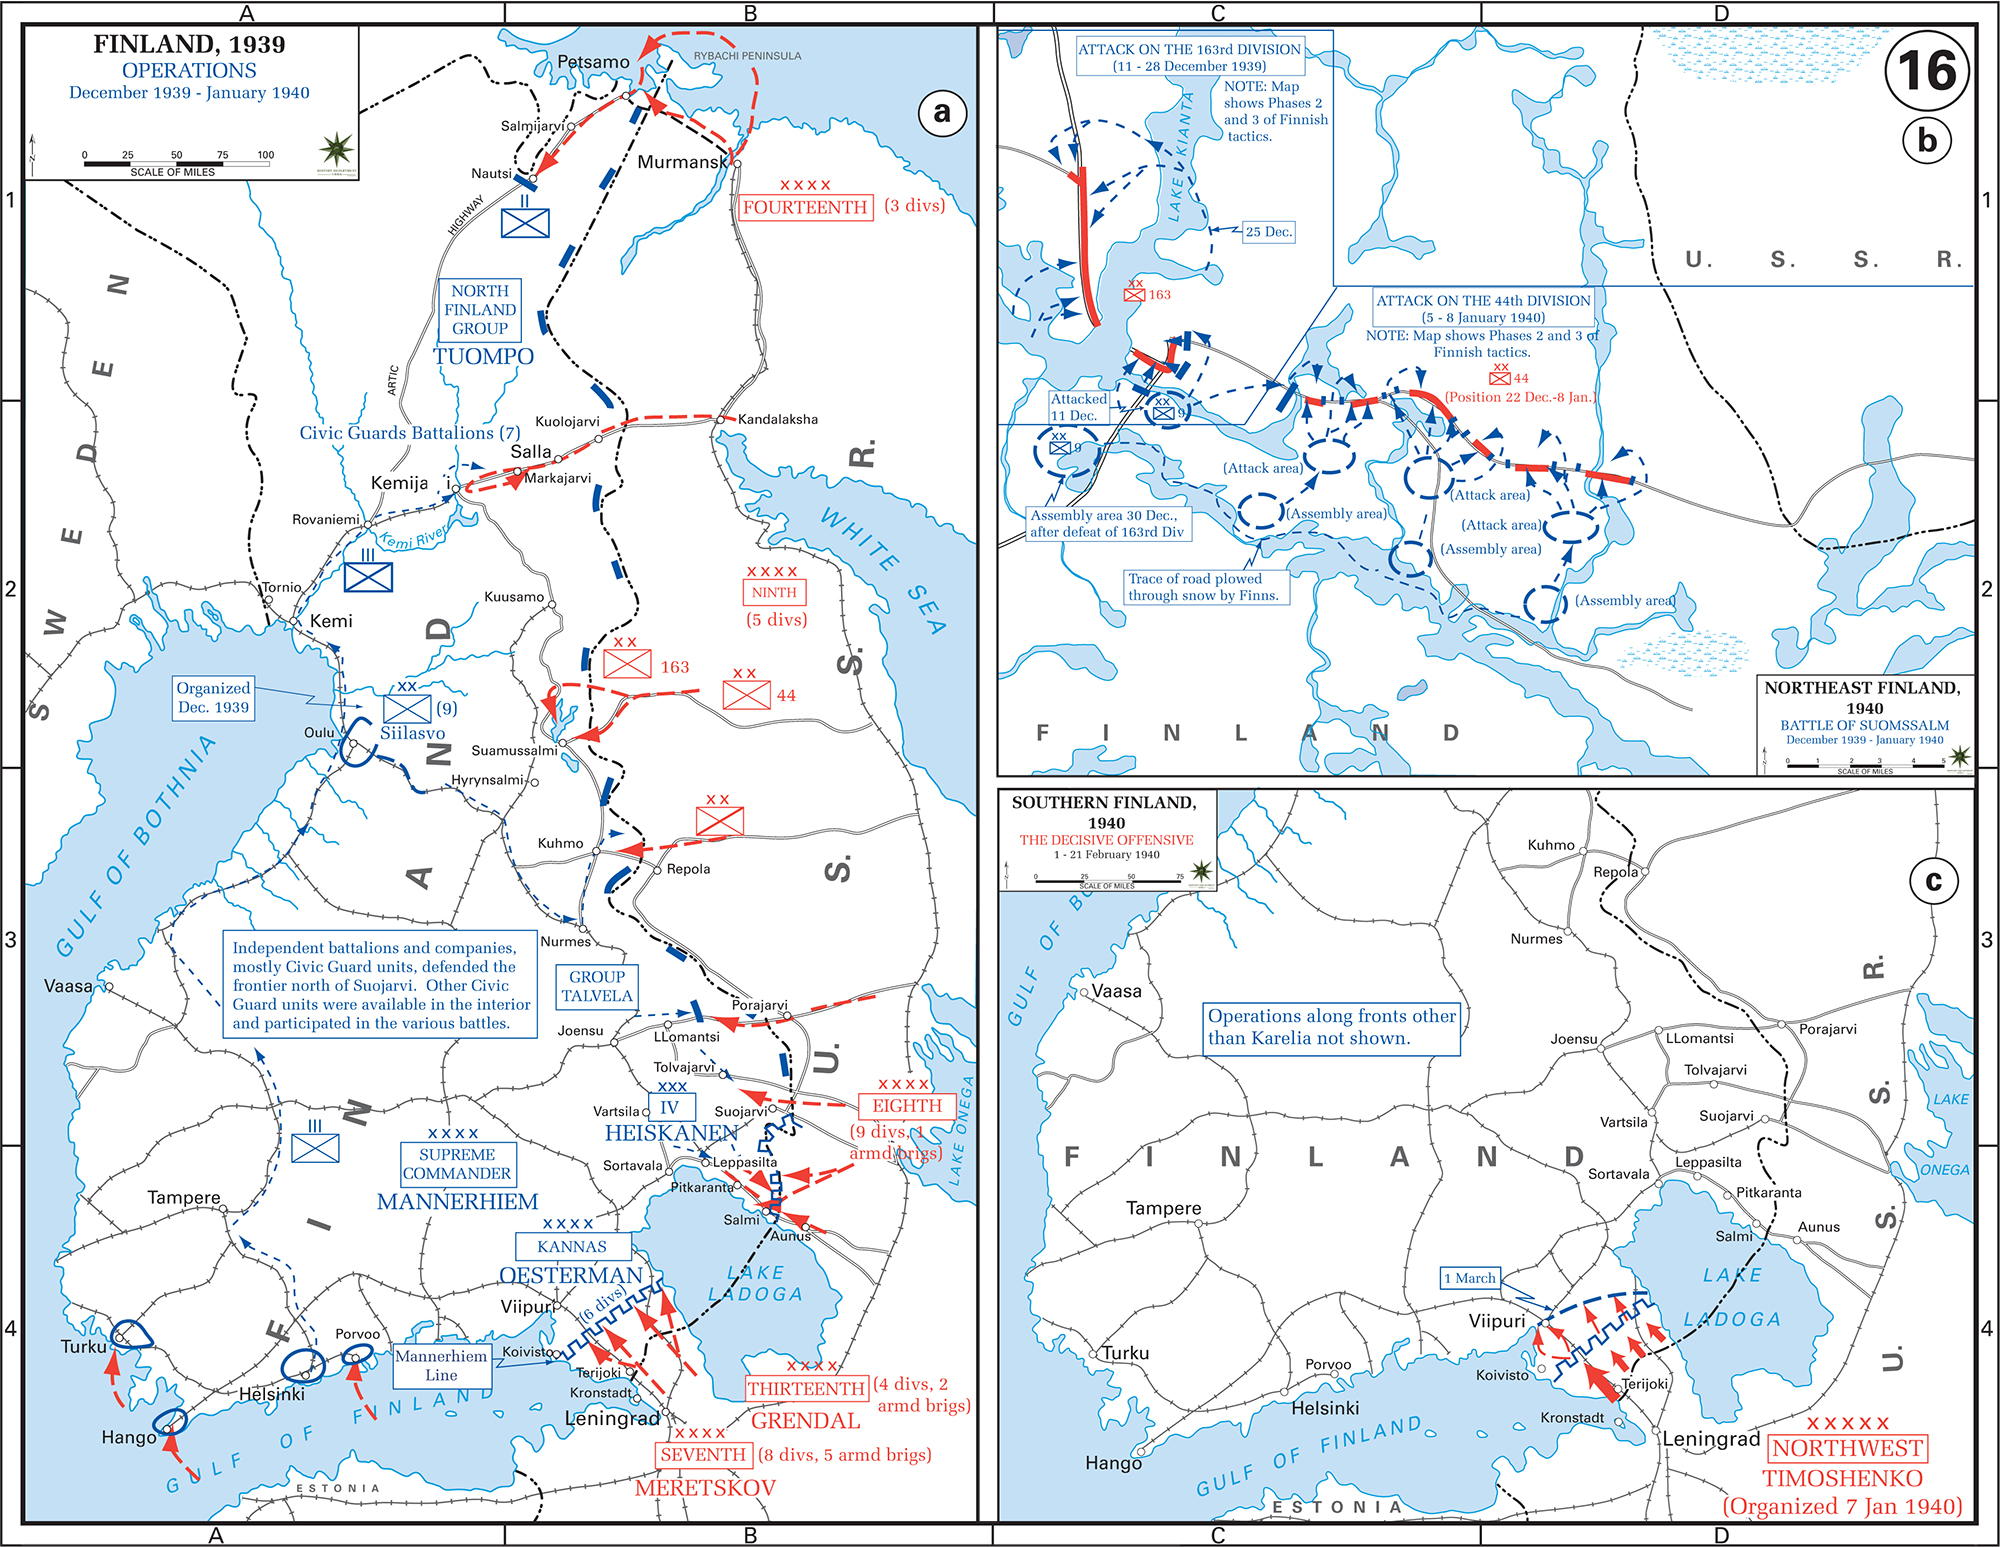 Map of wwii finland 19391940 wwii russo finnish war december 1939 february 1940 gumiabroncs Choice Image